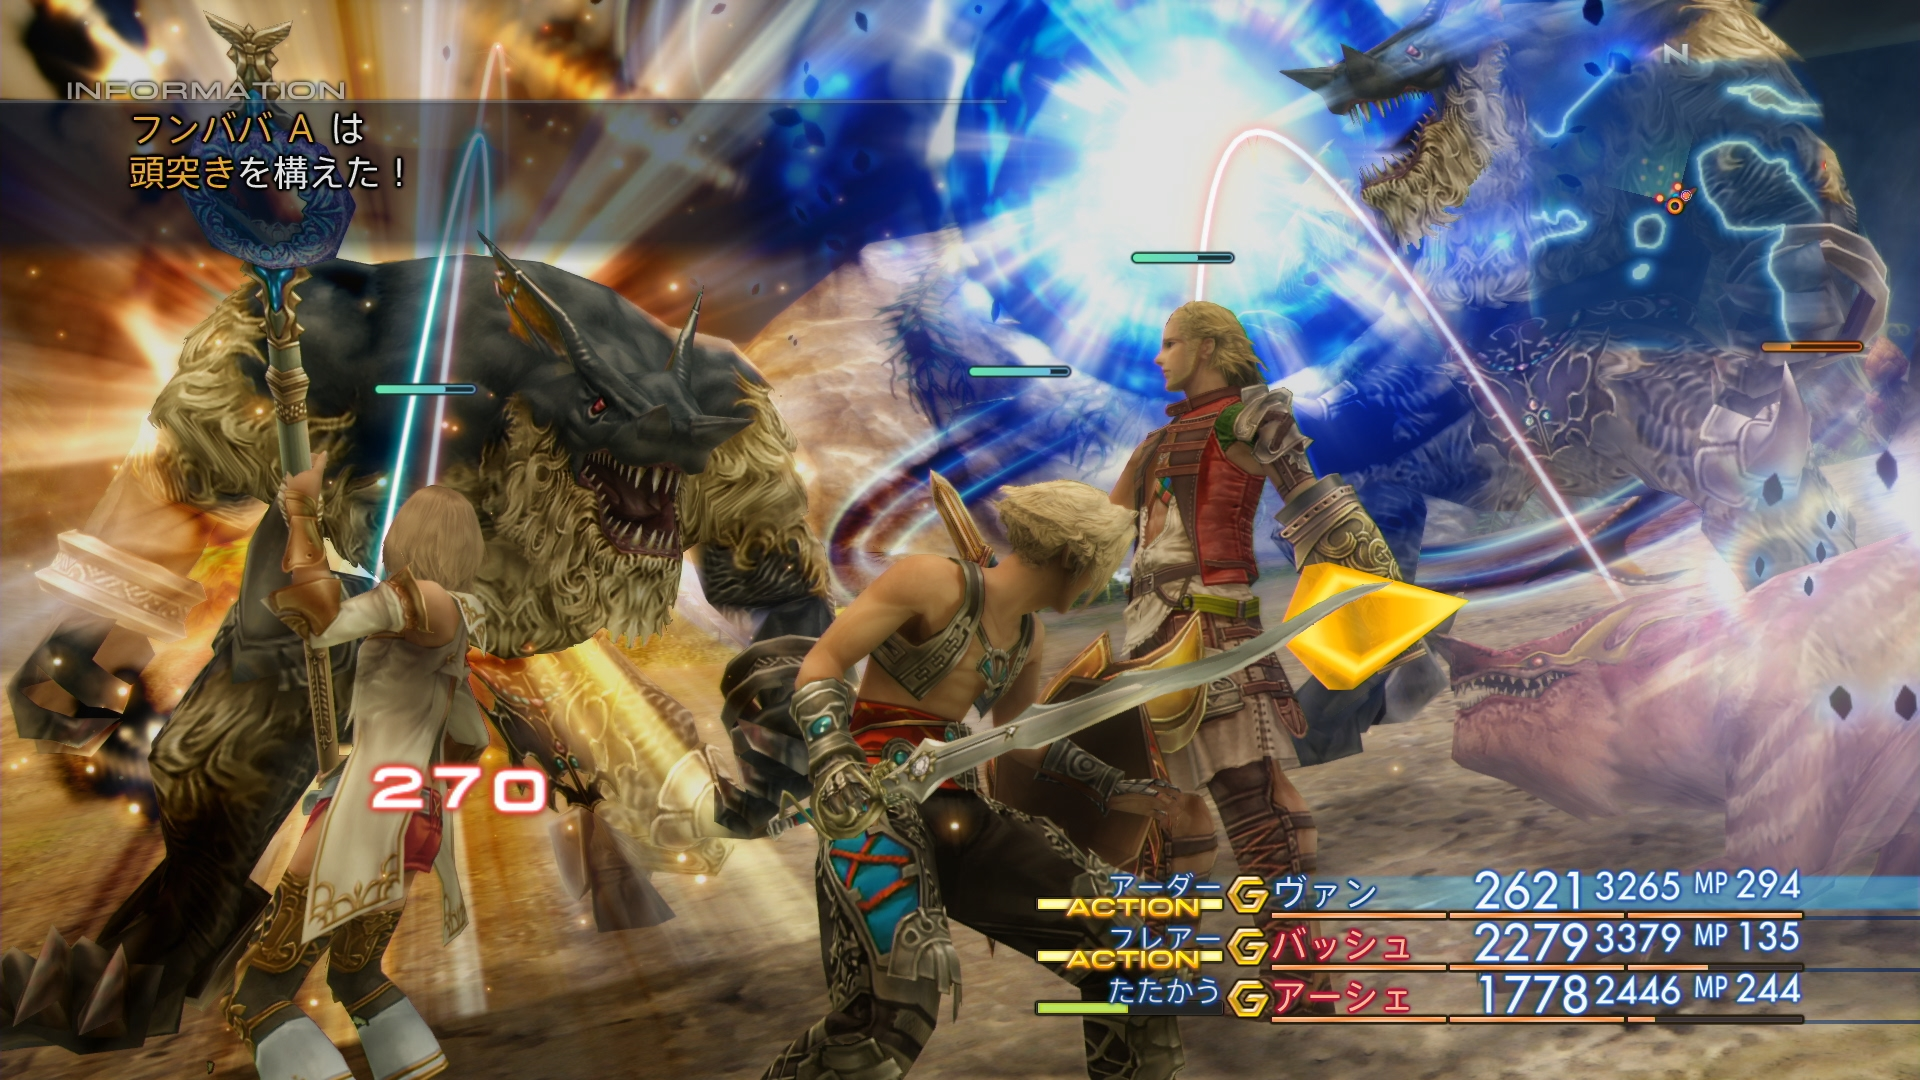 Final Fantasy Xii The Zodiac Age Tops One Million Shipments And